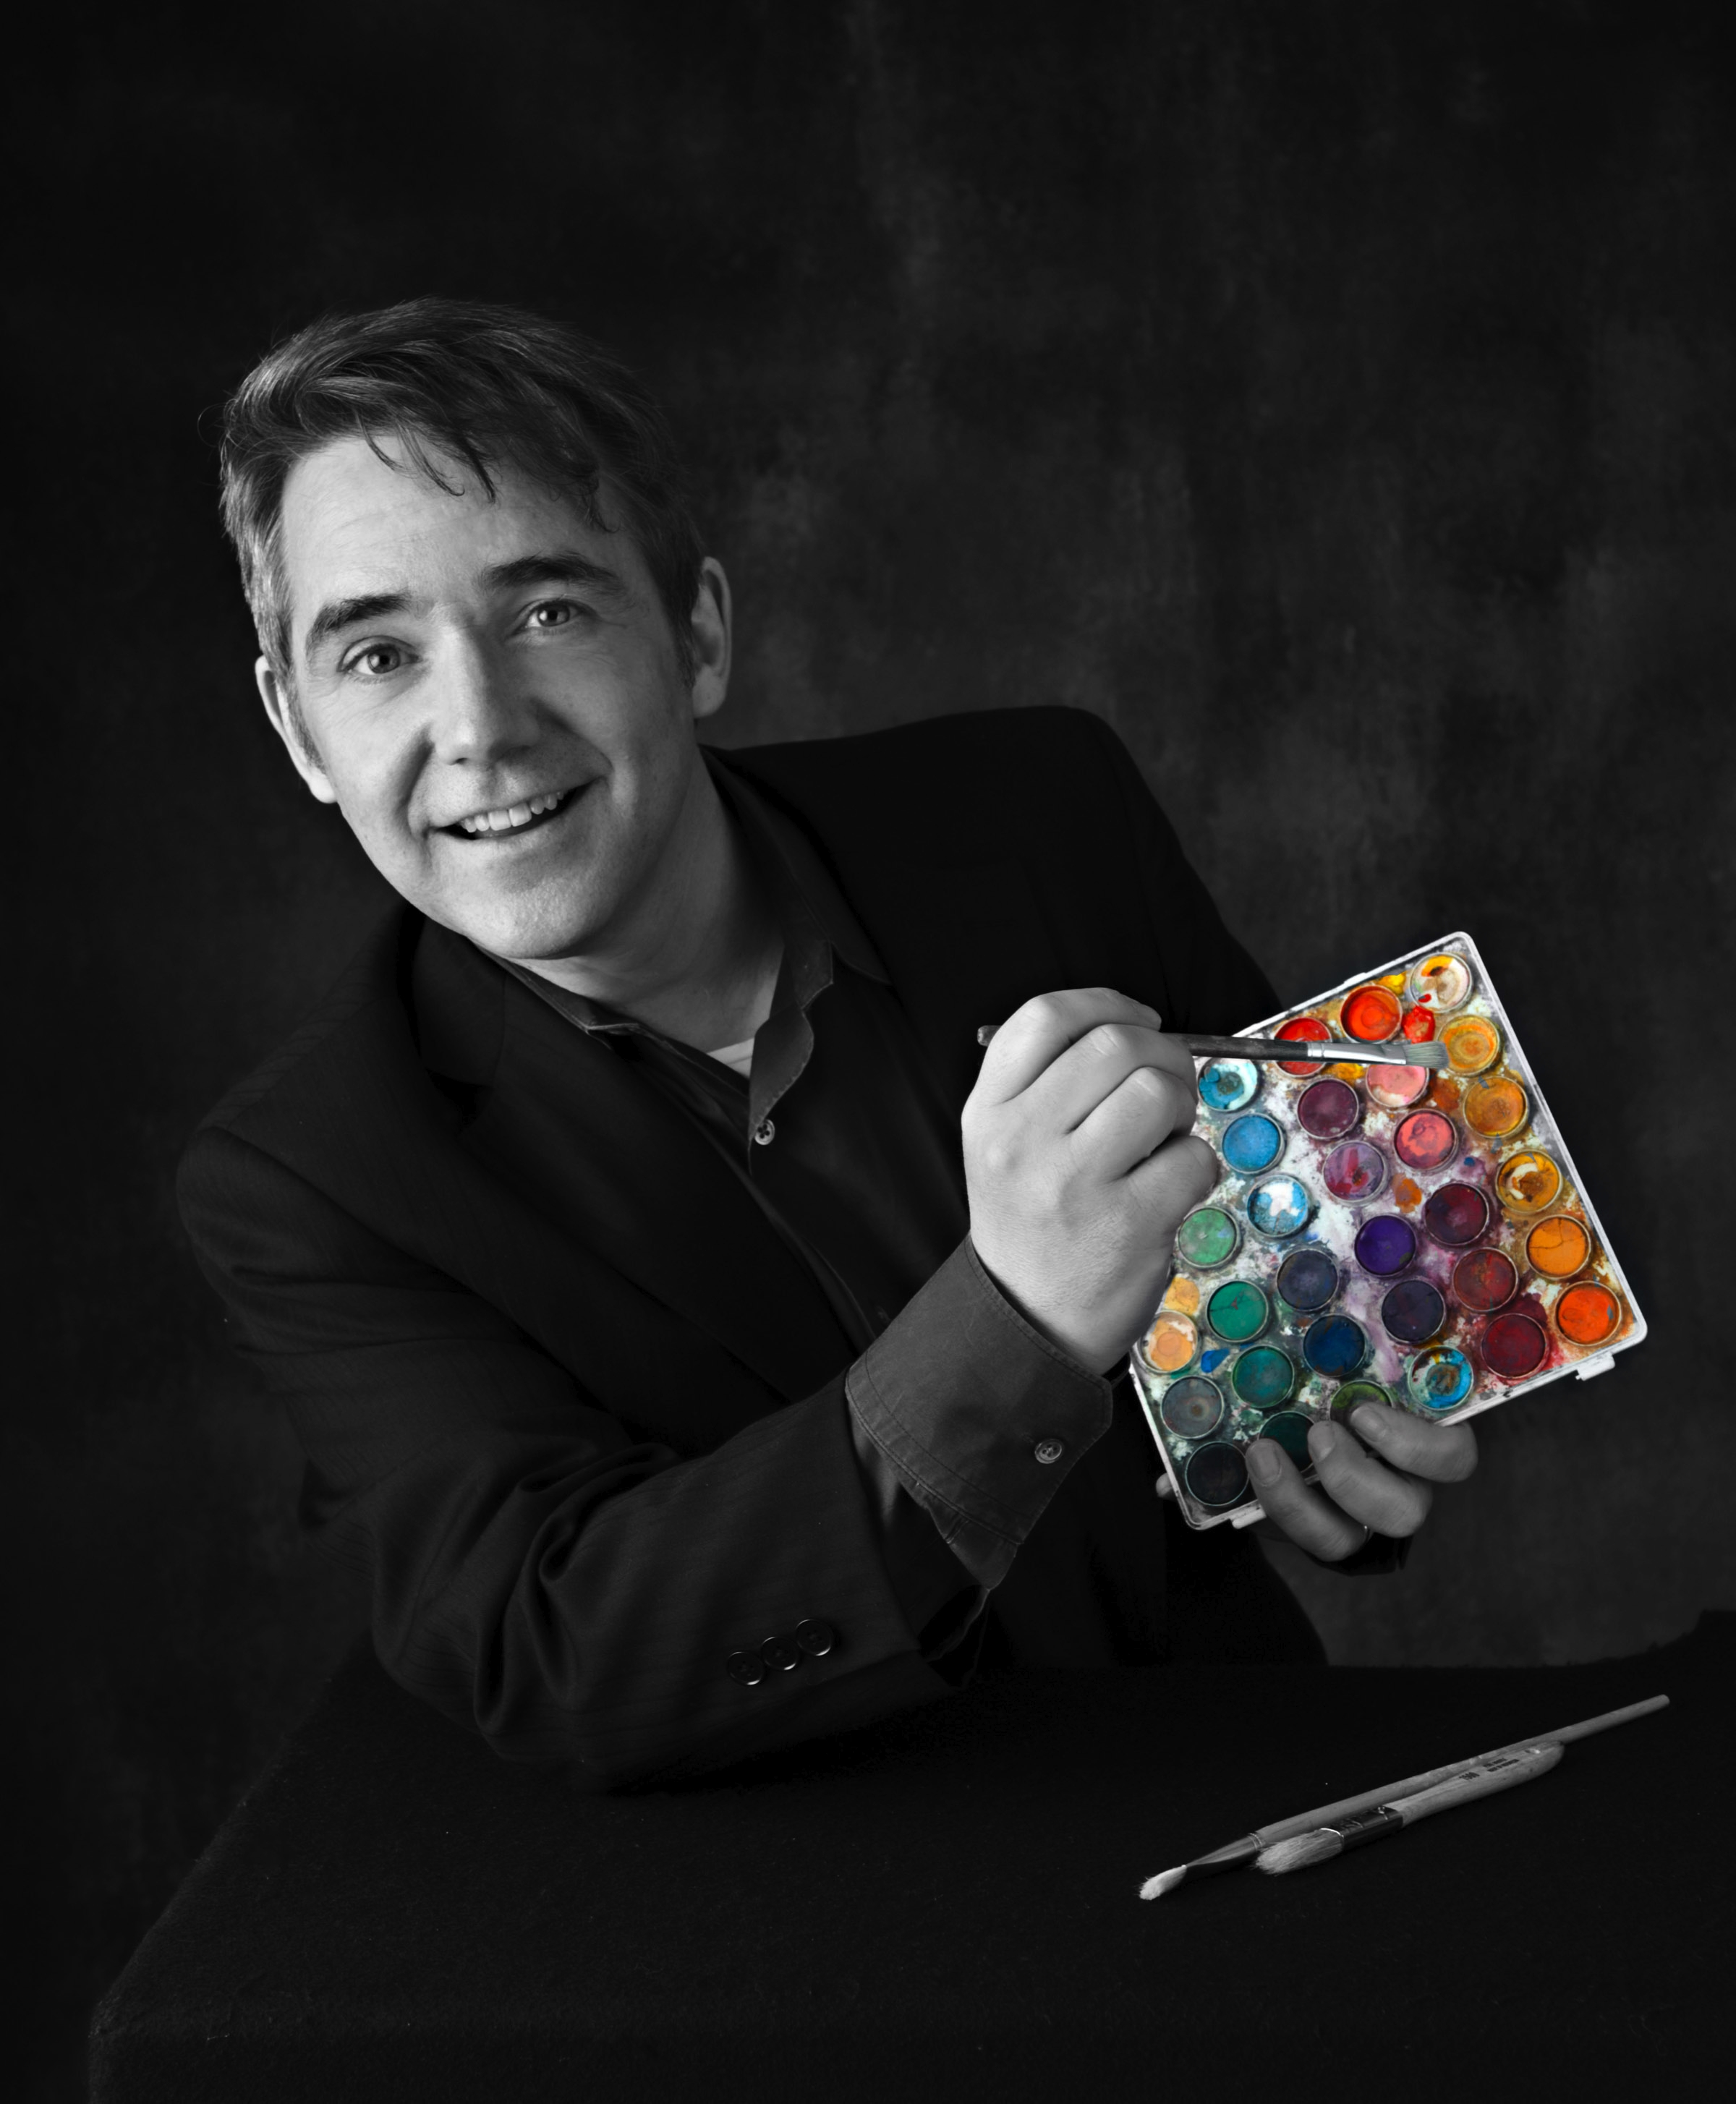 peter_with_paint_palette_rgb.jpg